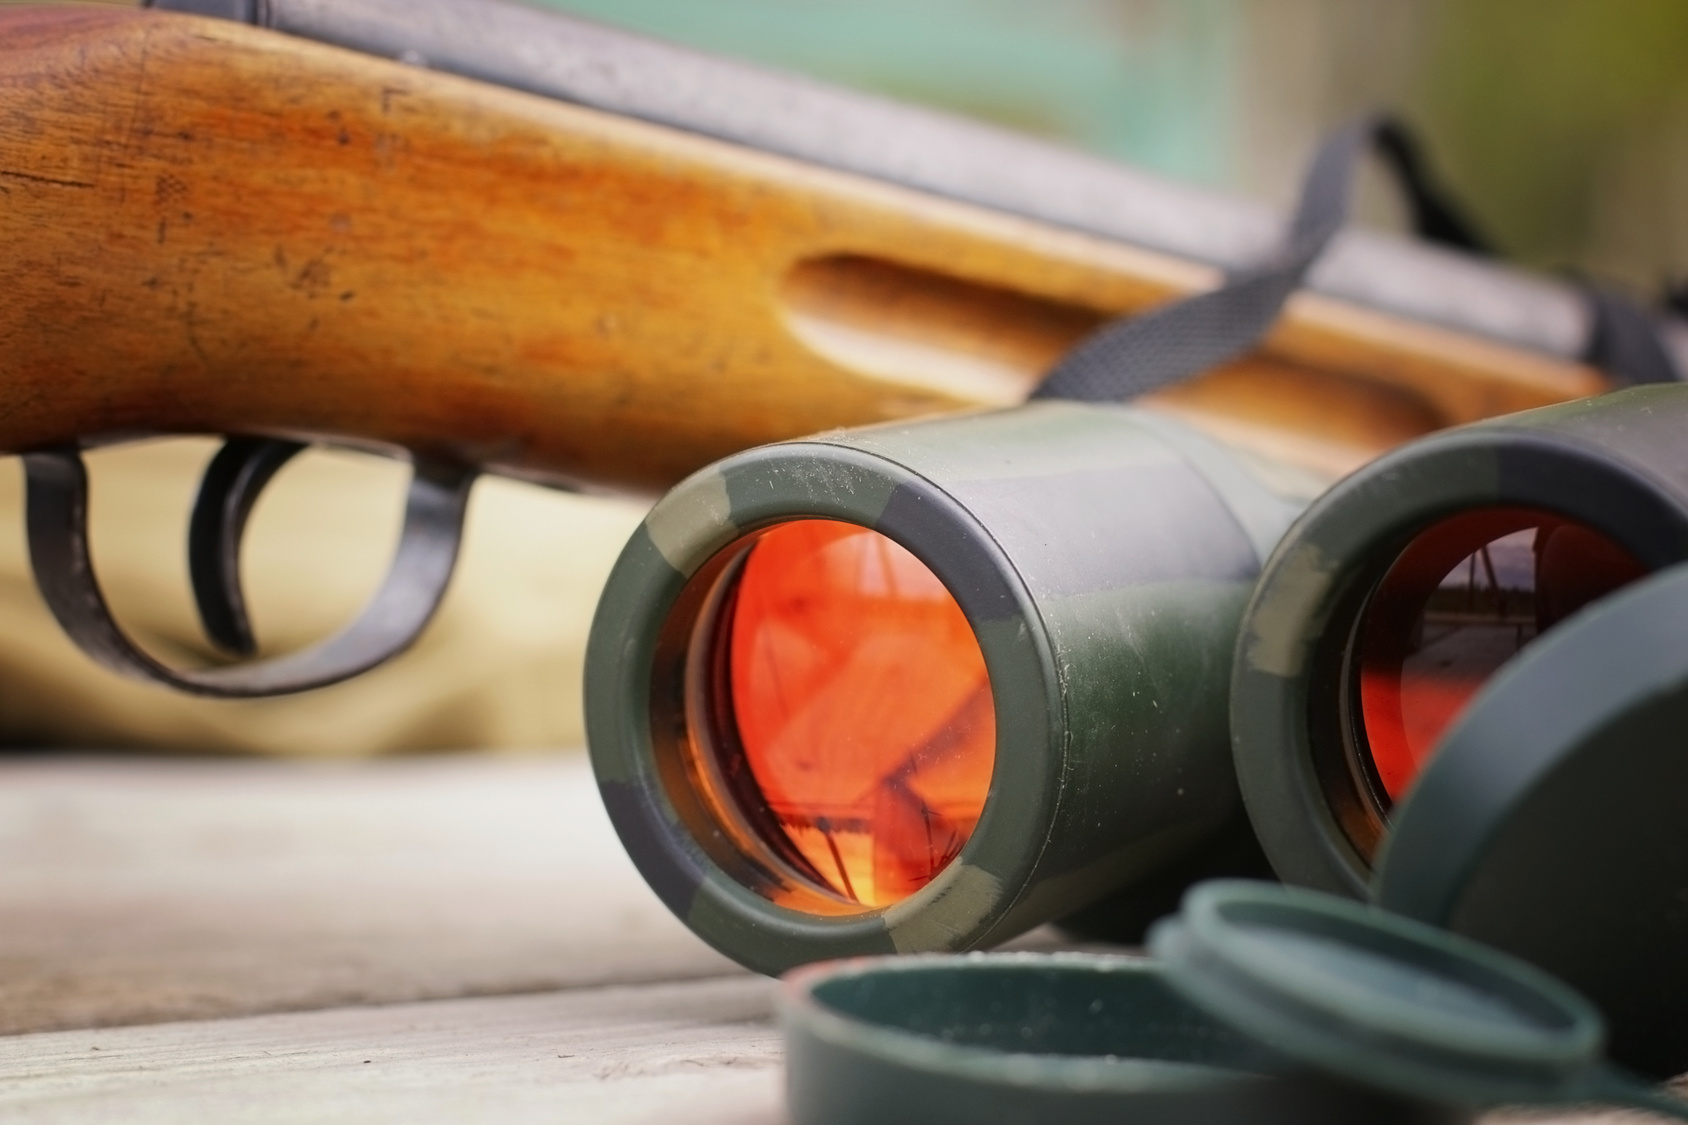 Best Compact Binoculars for Birding, Hunting and More